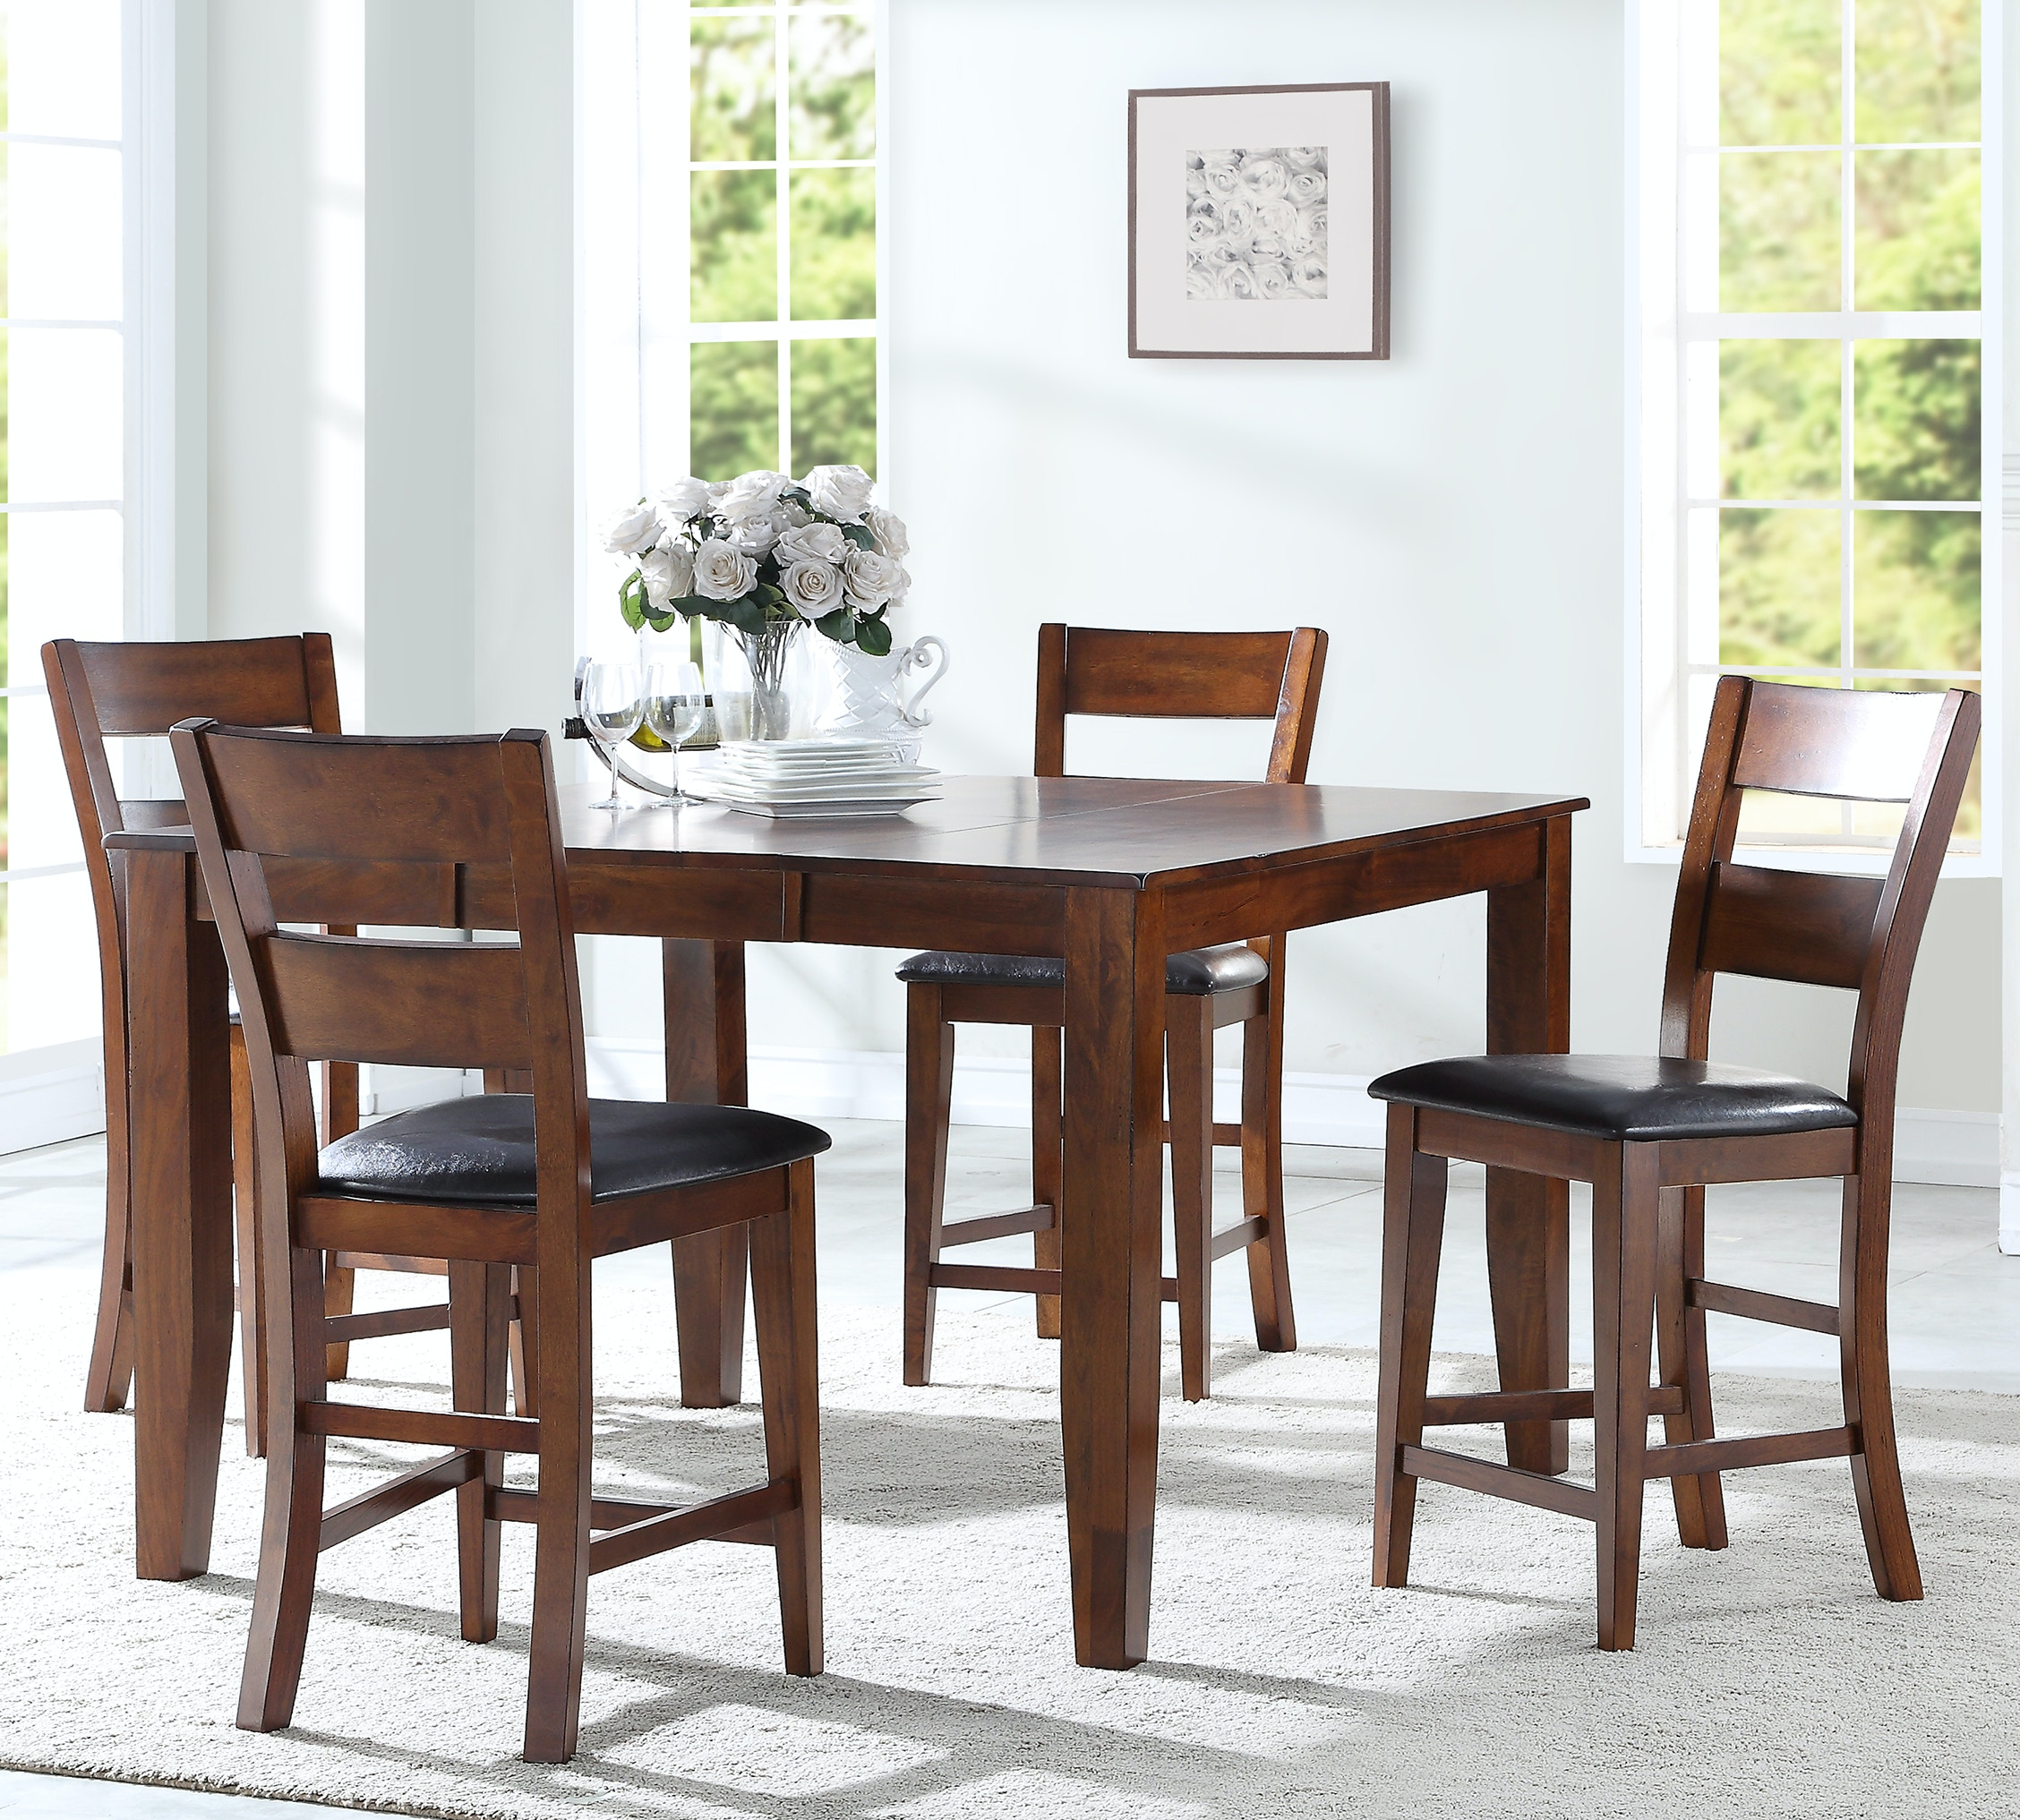 Mango 5 Piece Counter Height Dining Set GP:D592